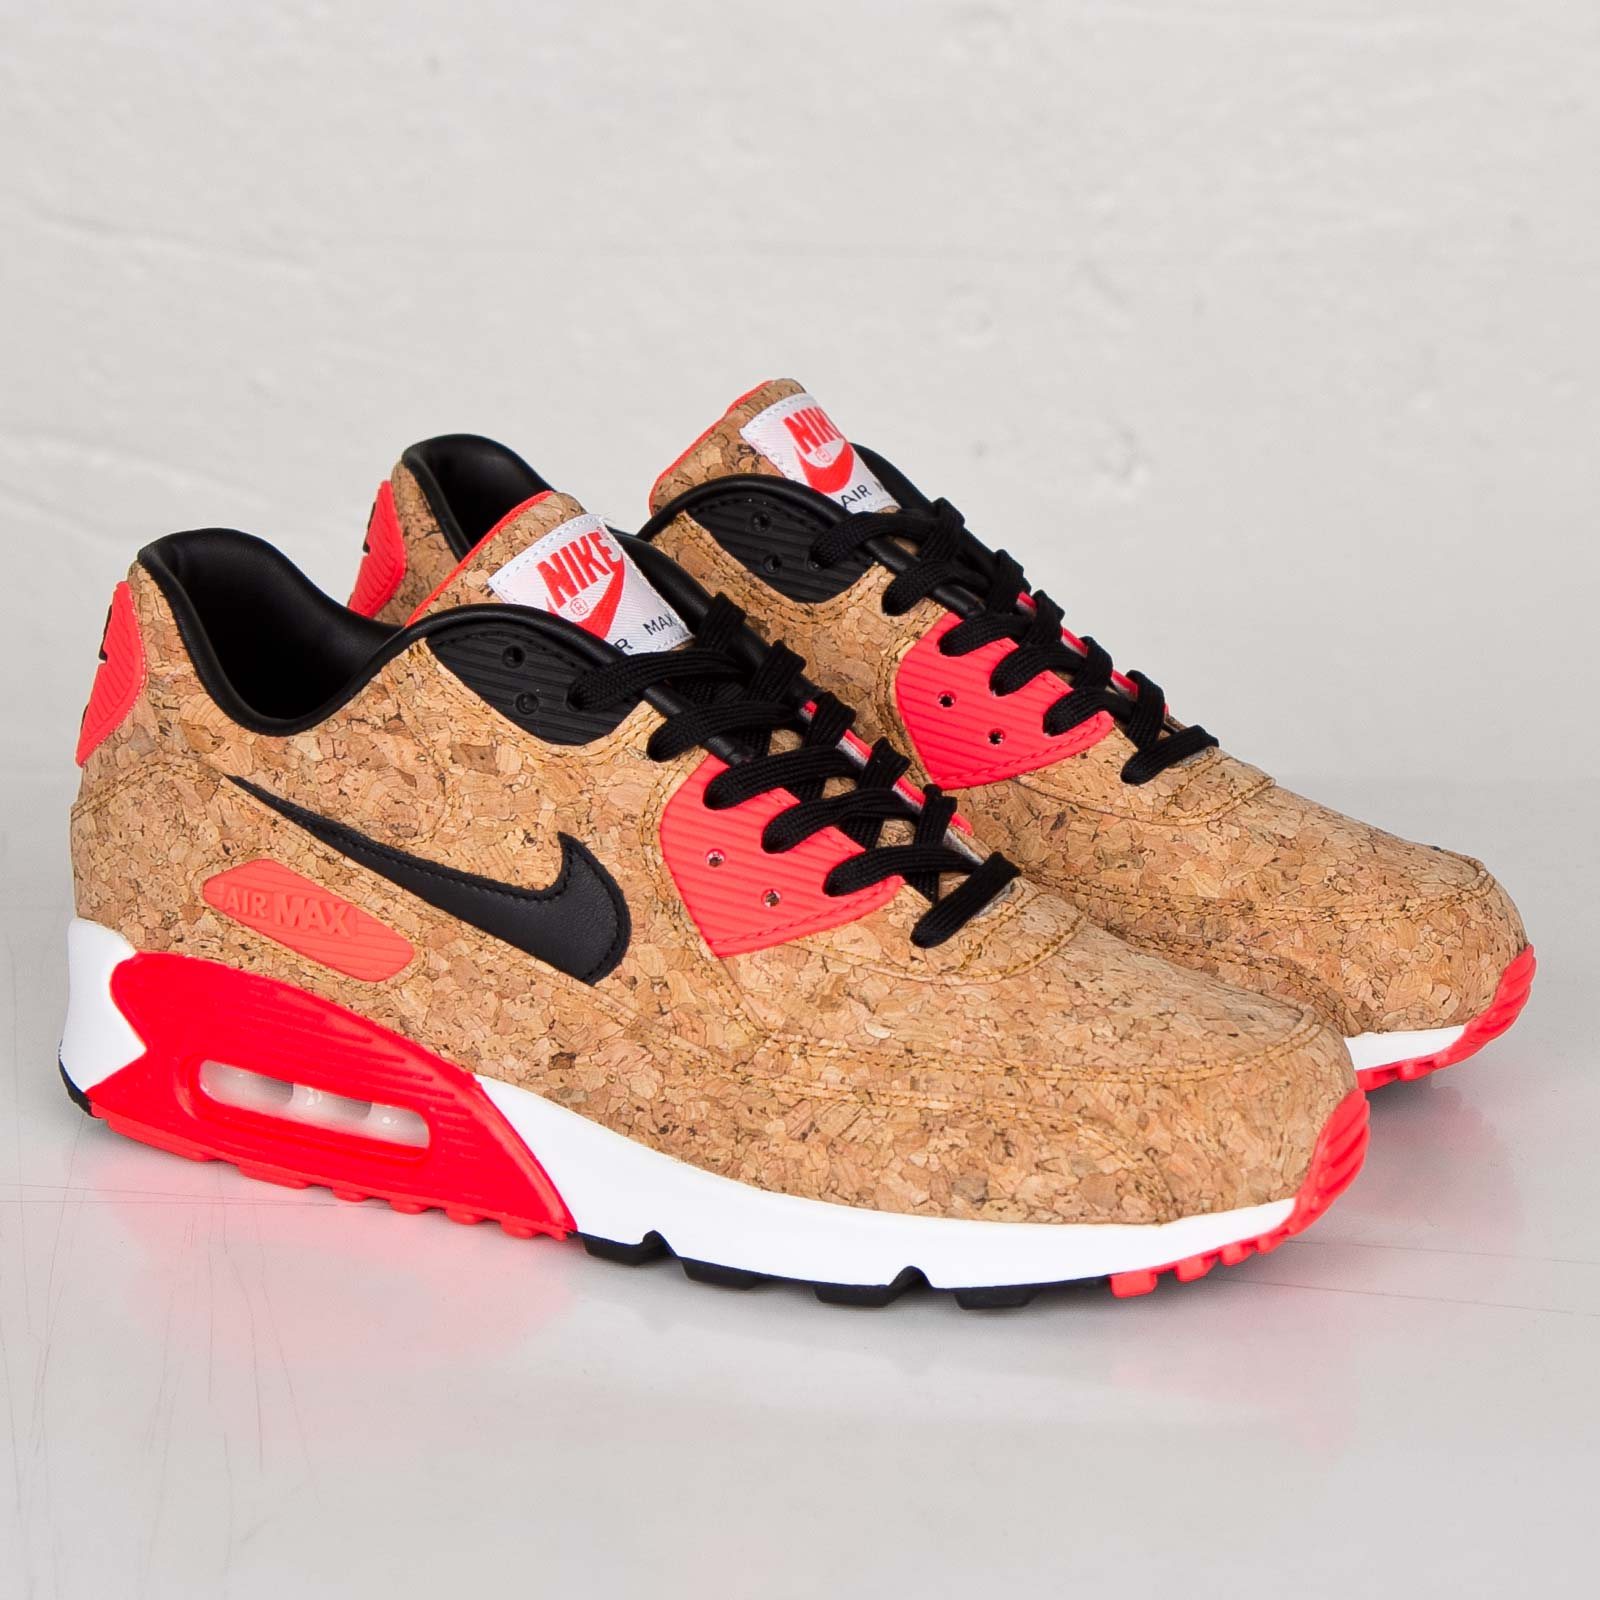 Nike Air Max 2015 For Sale Philippines